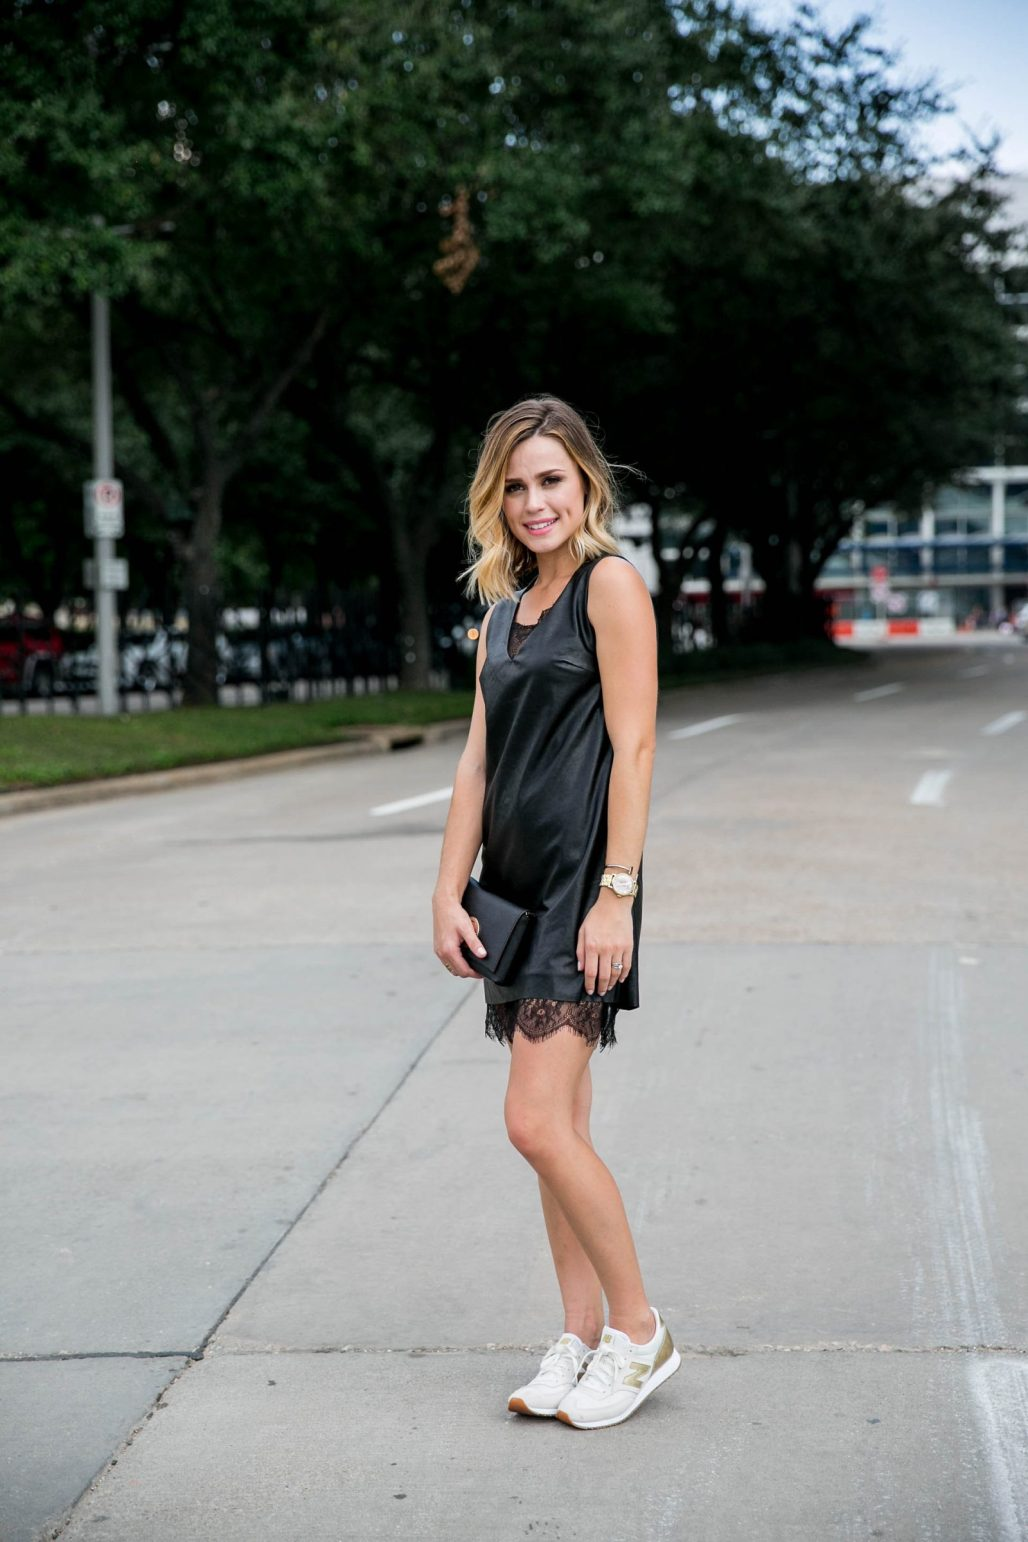 JOA leather dress with sneakers outfit